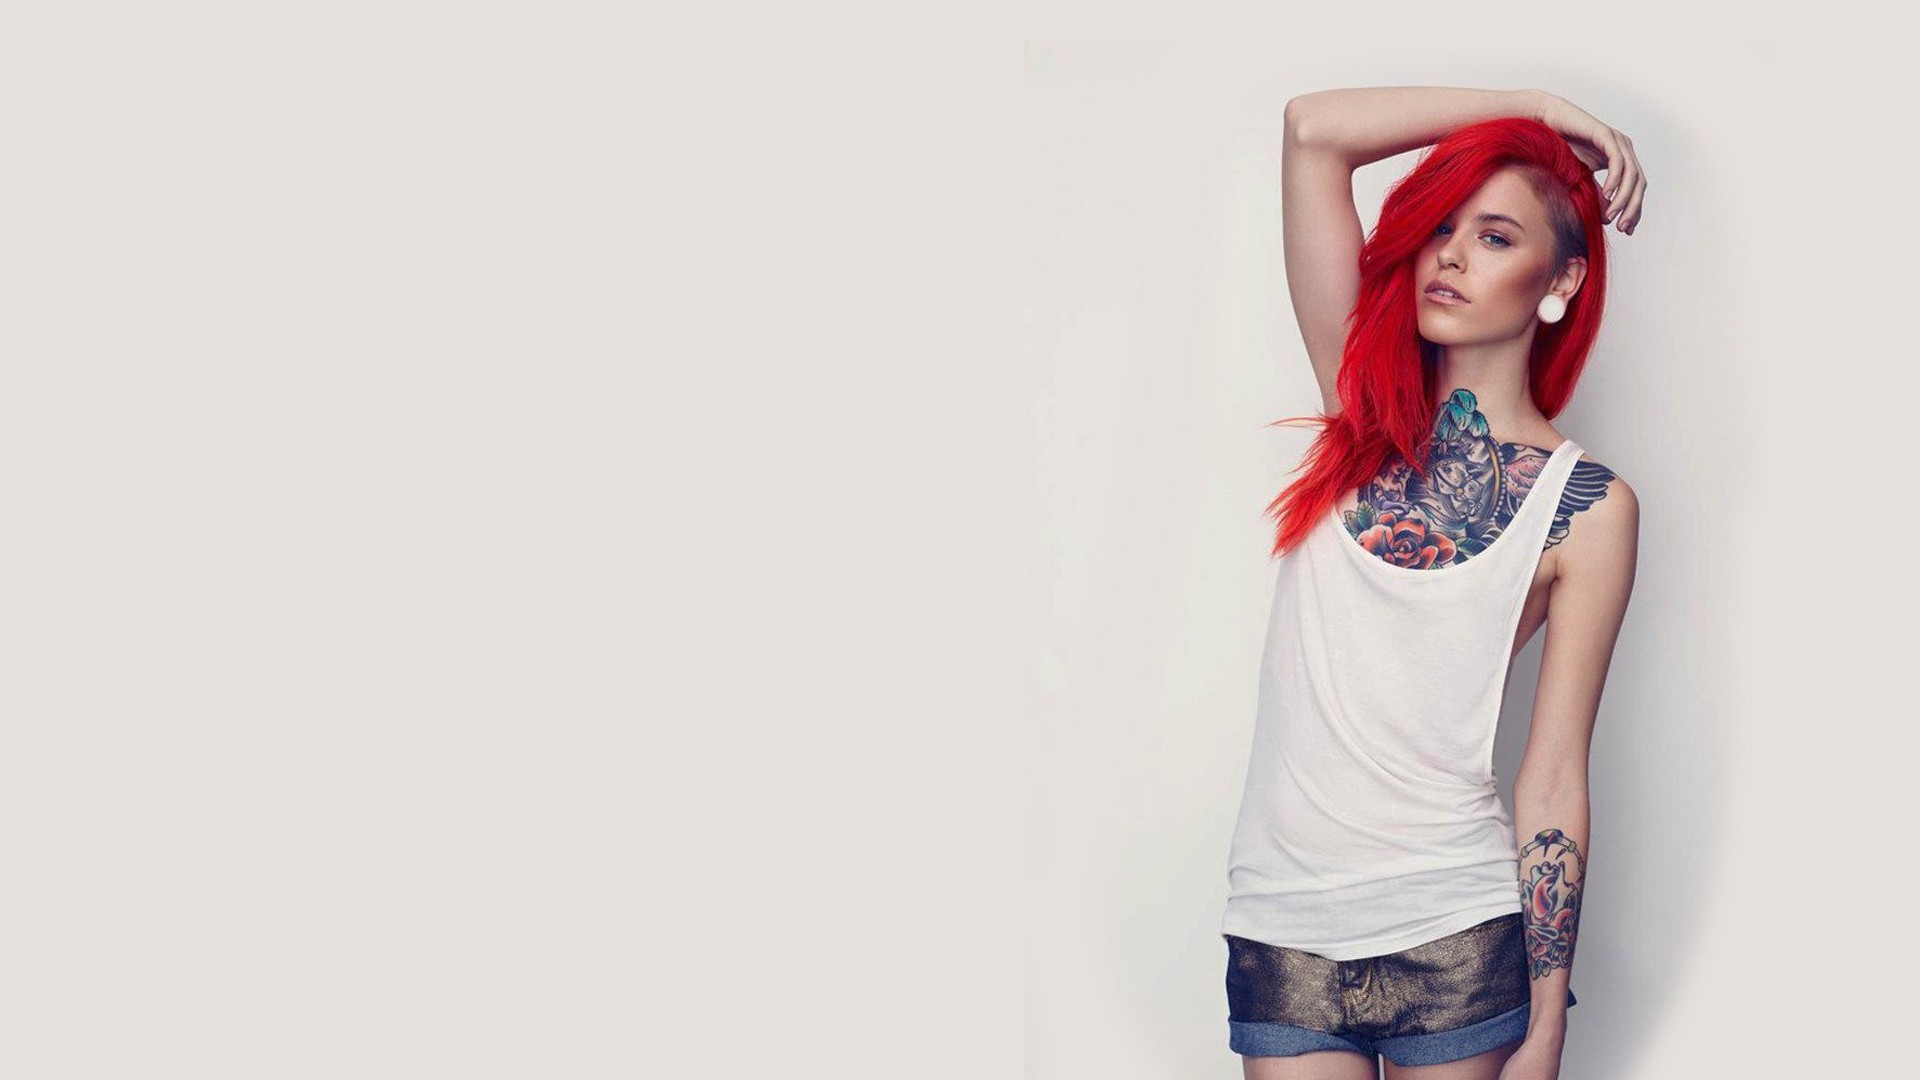 Res: 1920x1080, Tattoo Girl Wallpaper